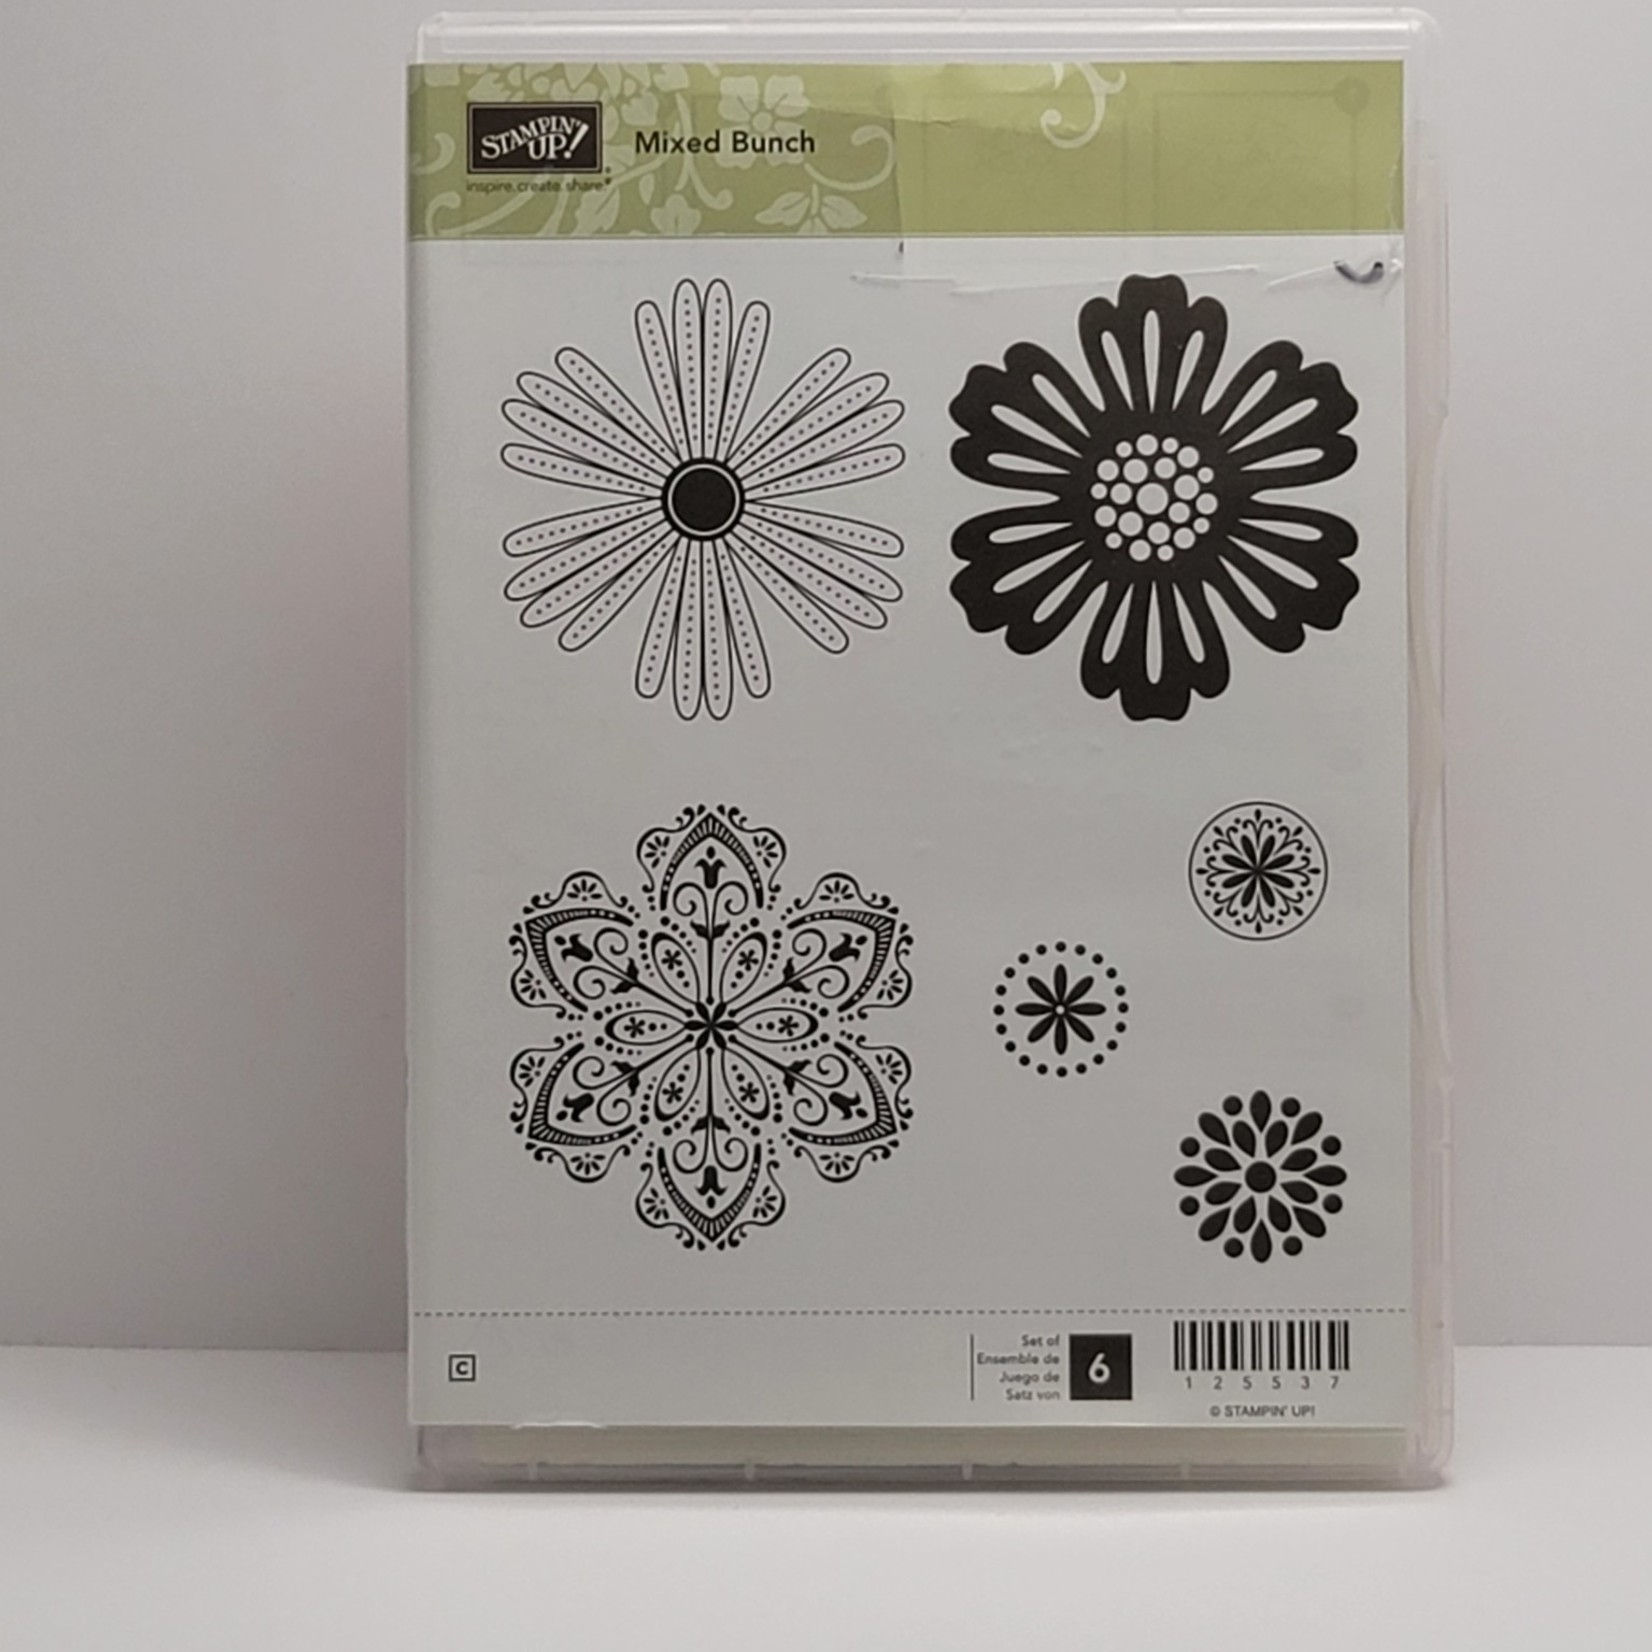 Stampin' Up Stampin' Up - Cling Stamps - Mixed Bunch